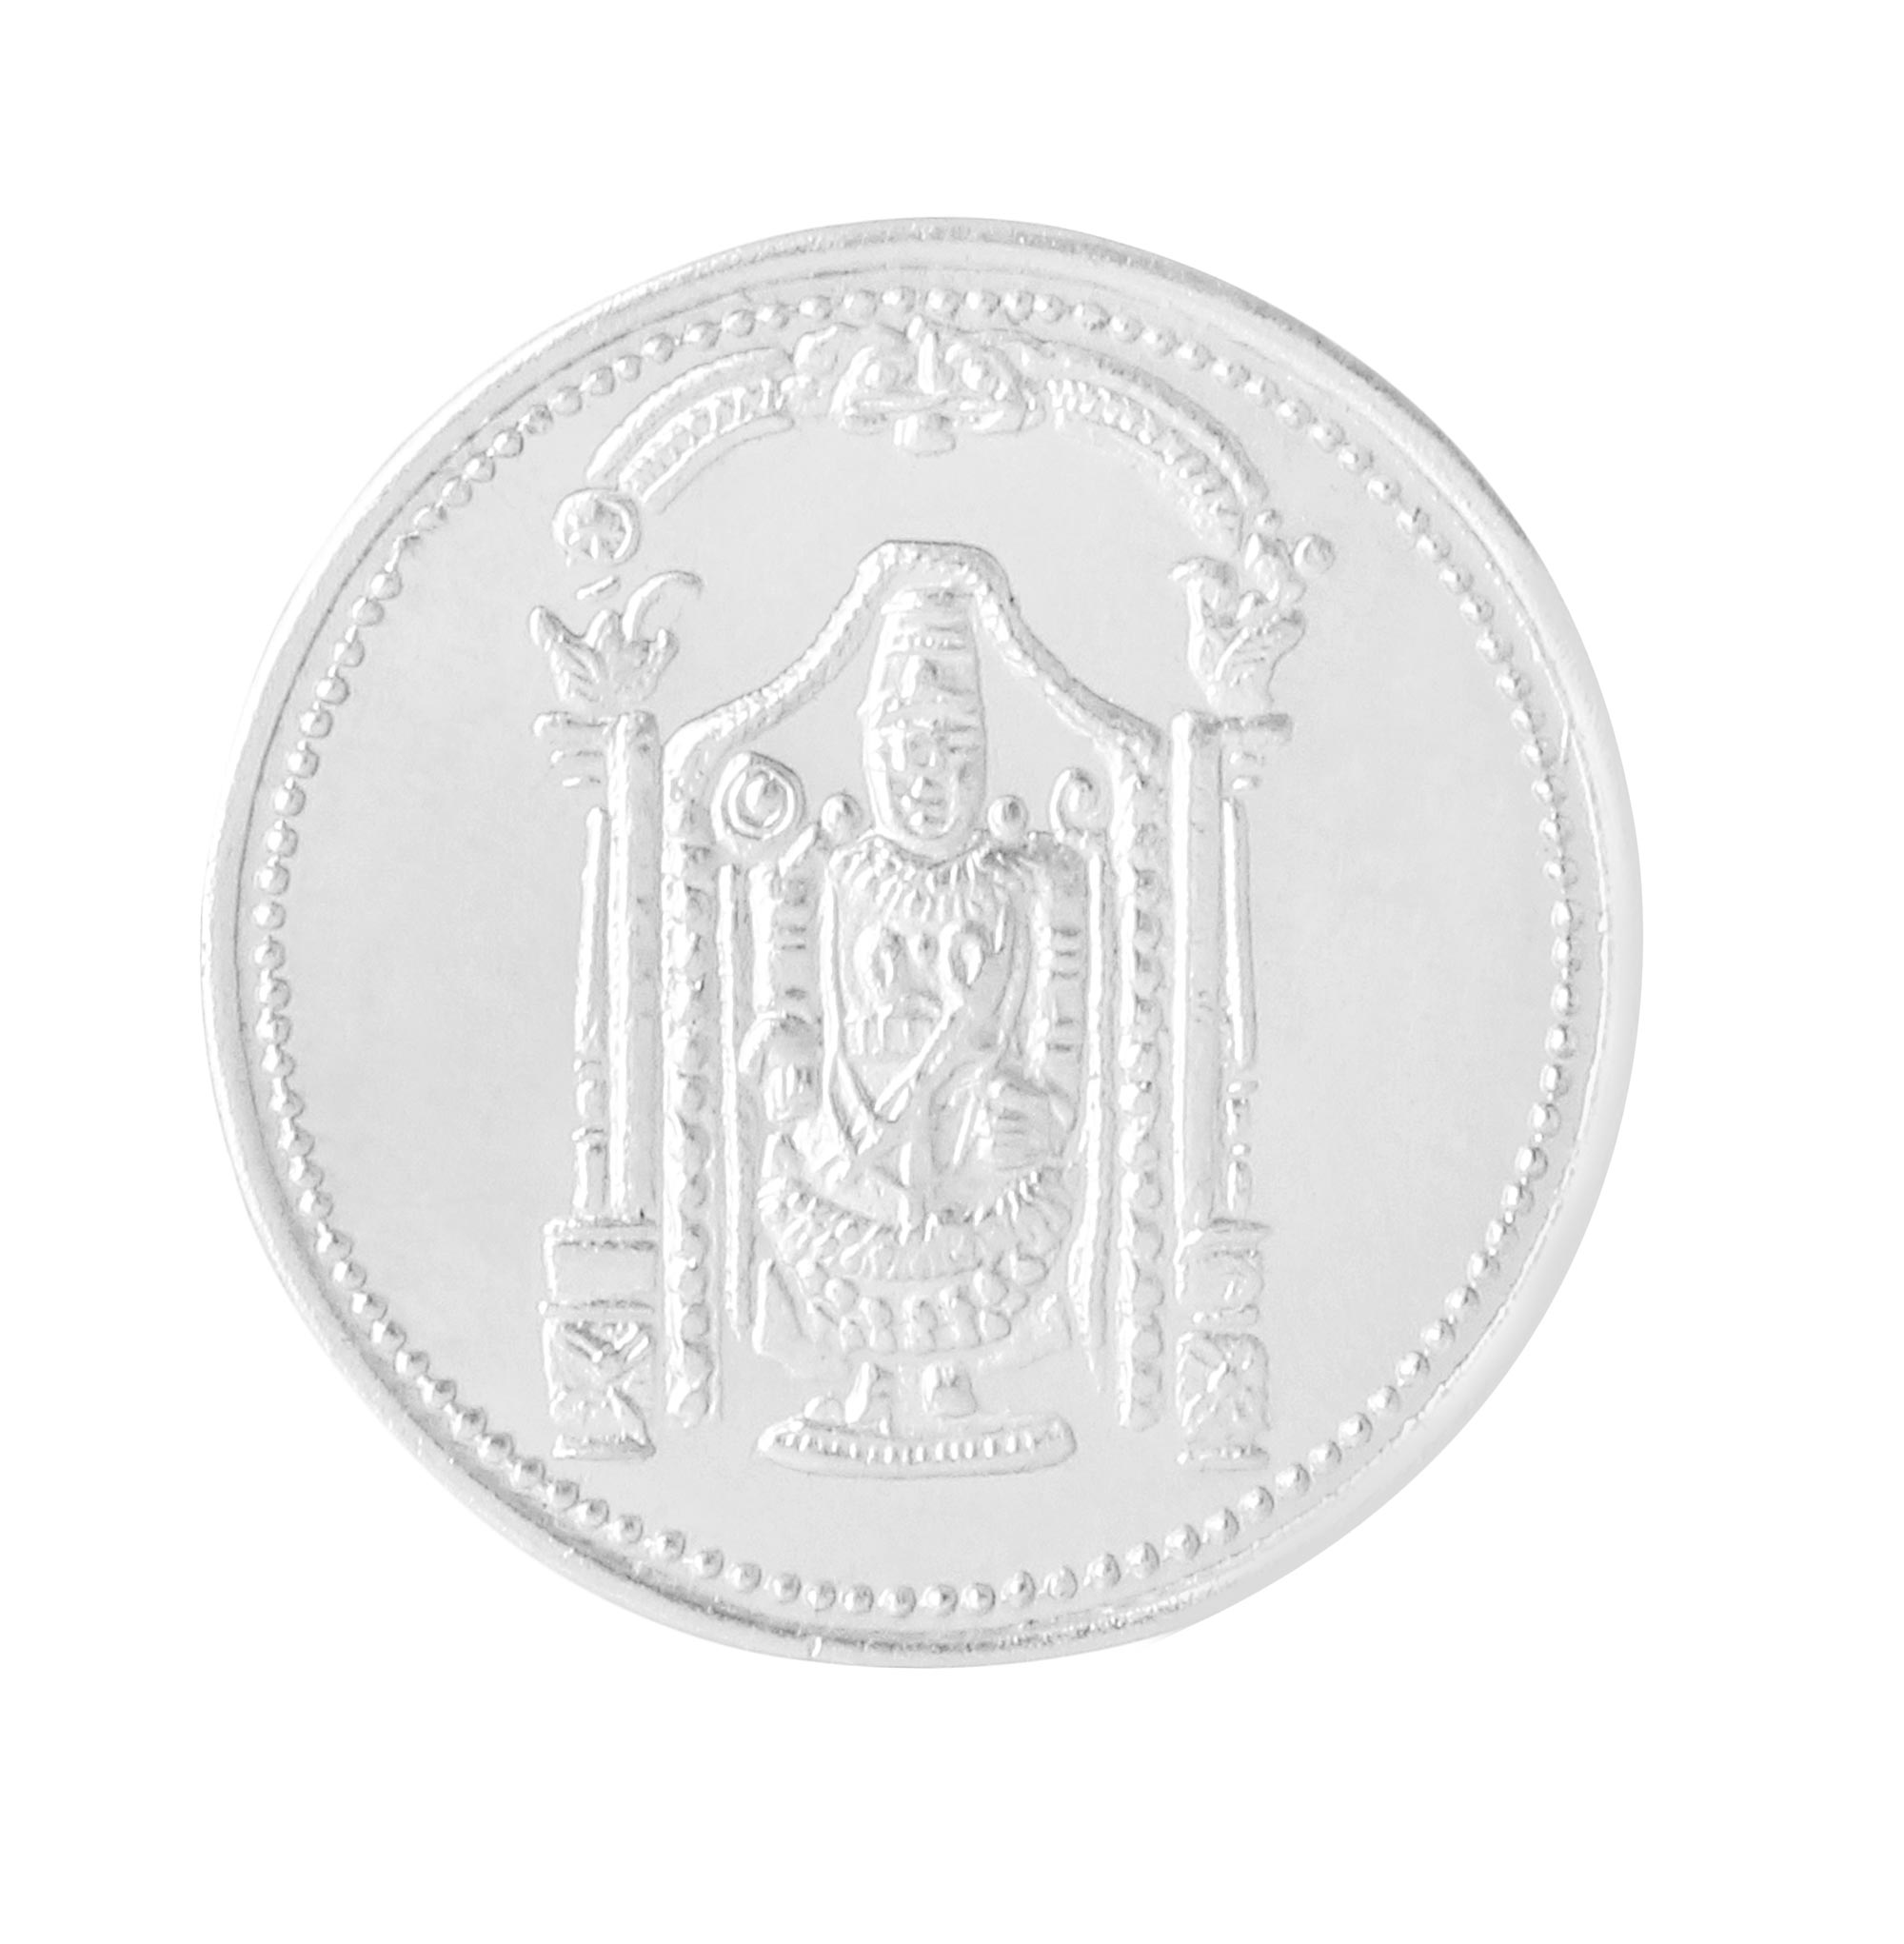 Silver Coin Tirupati ji | Novelty Jewellers